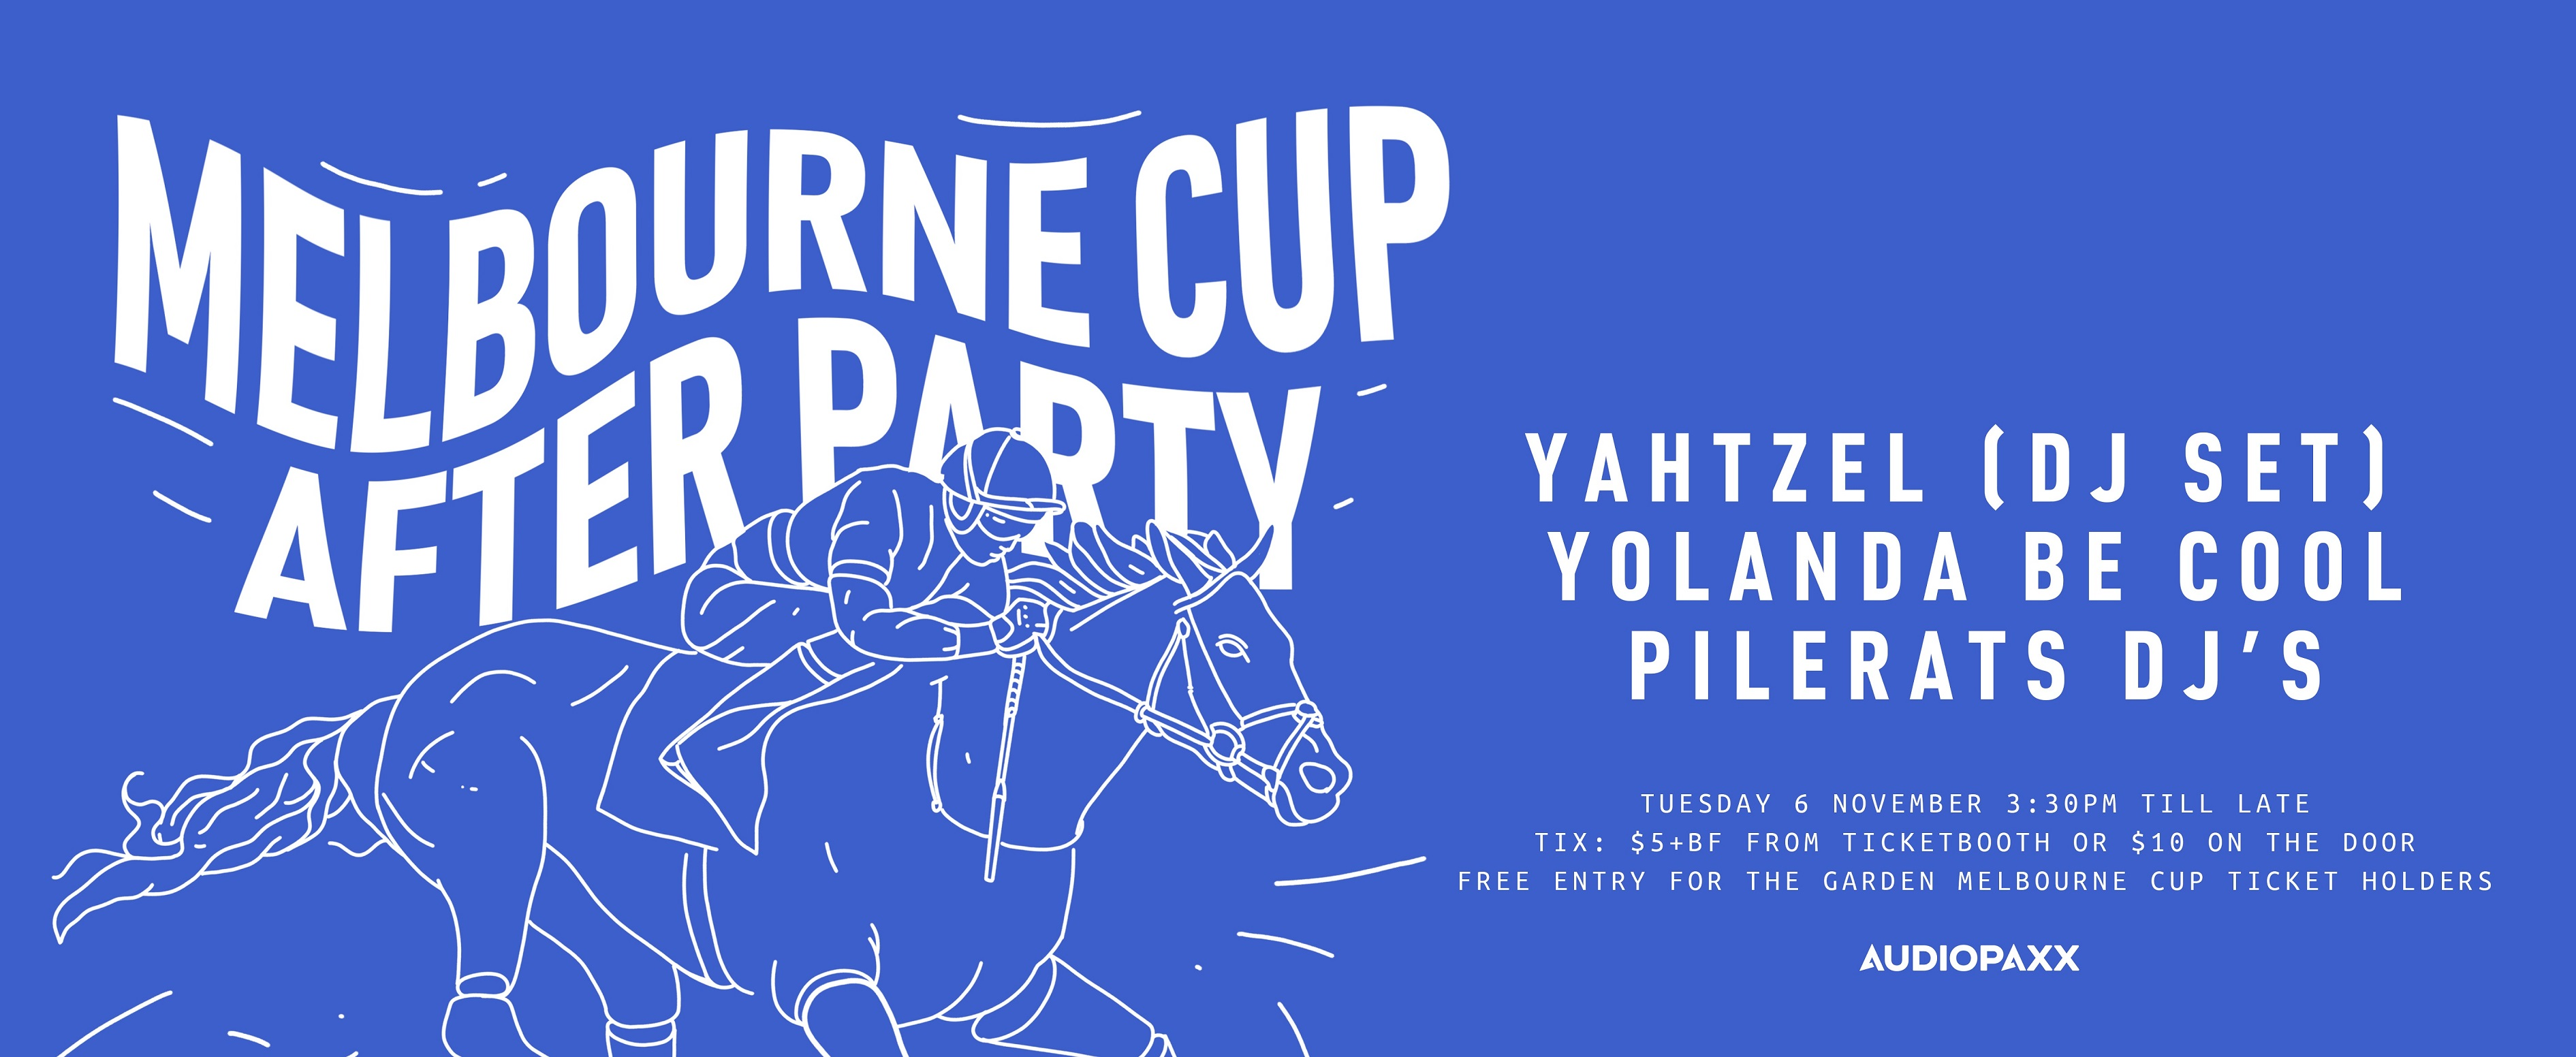 Tickets for Melbourne Cup Afterparty Yahtzel & Yolanda Be Cool in Leederville from Ticketbooth